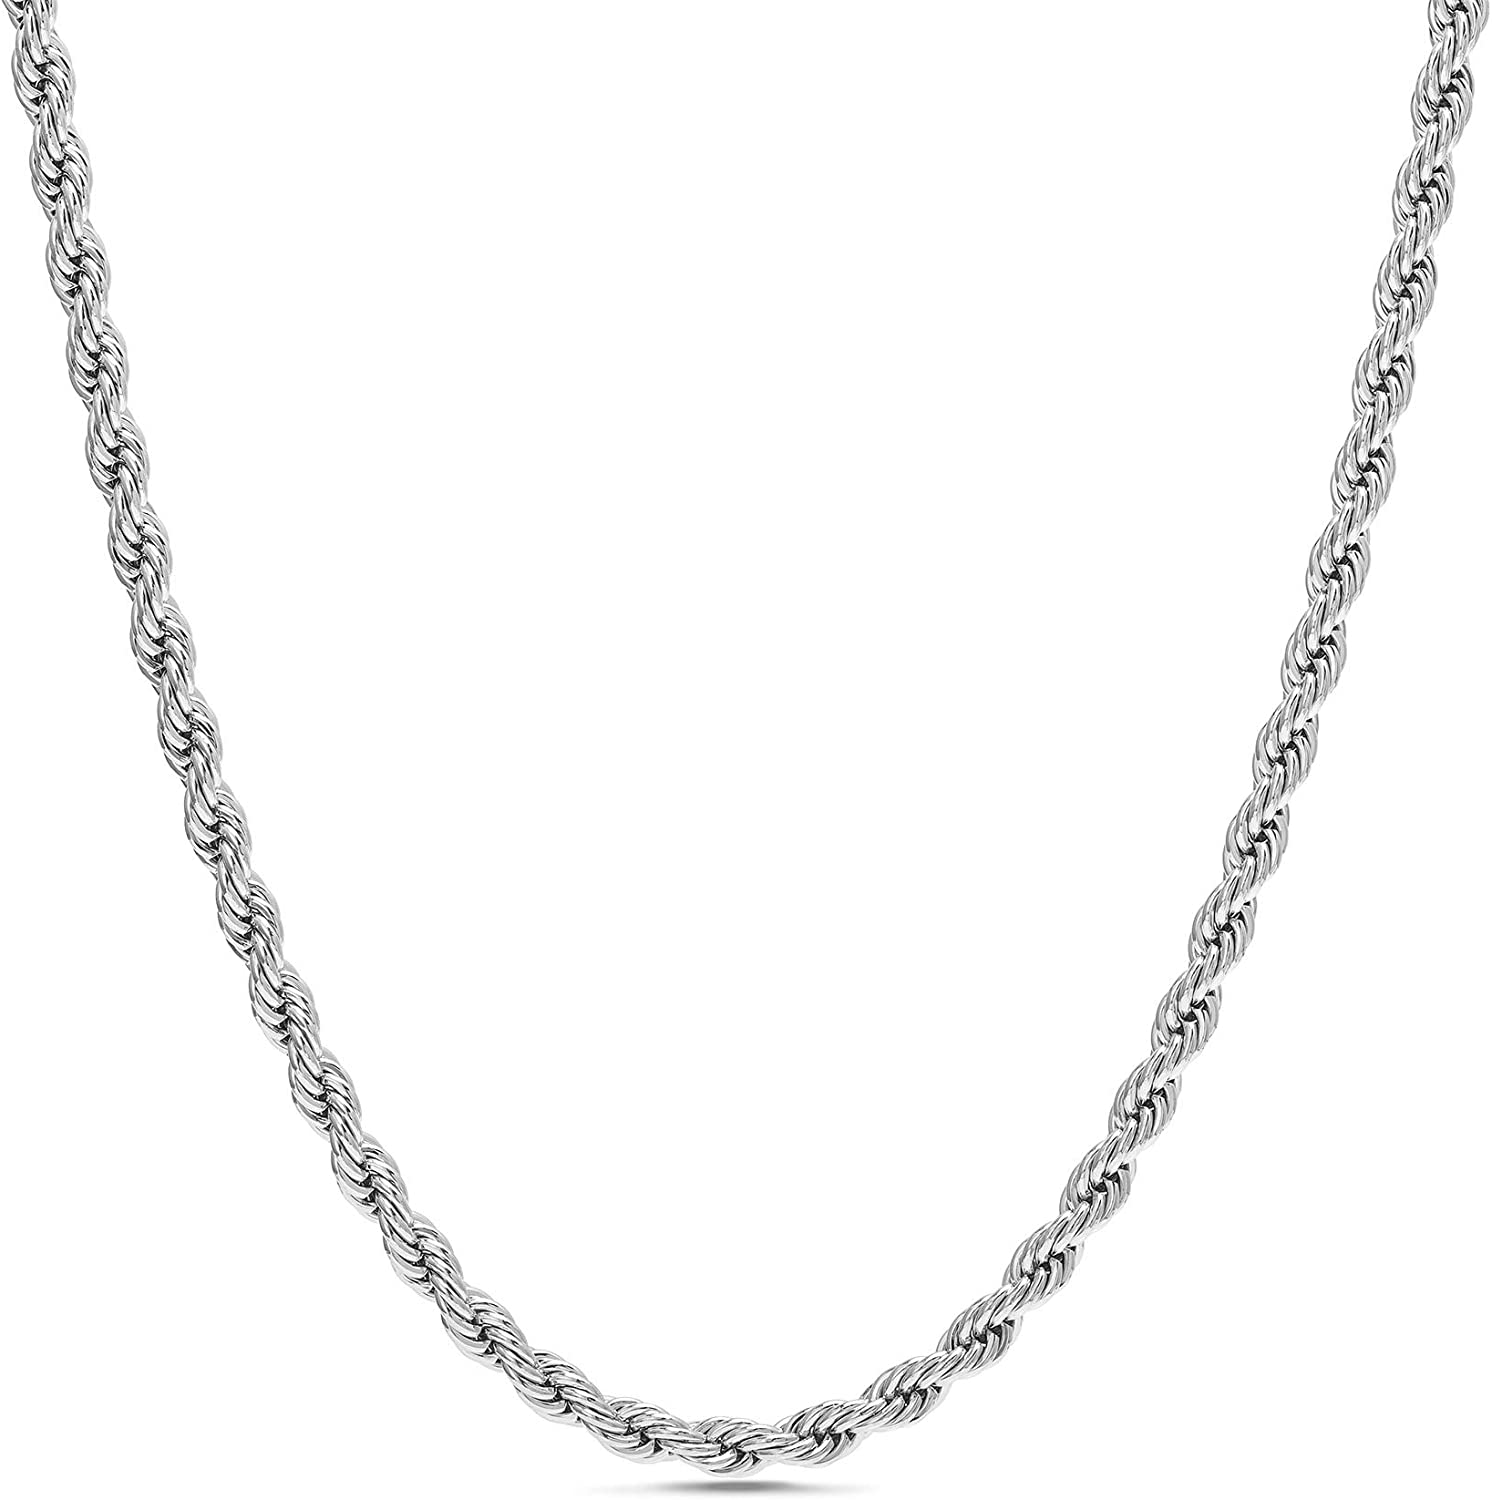 Nautica 2mm - 8mm Rope Chain Necklace for Men or Women in Rhodium Plated Brass